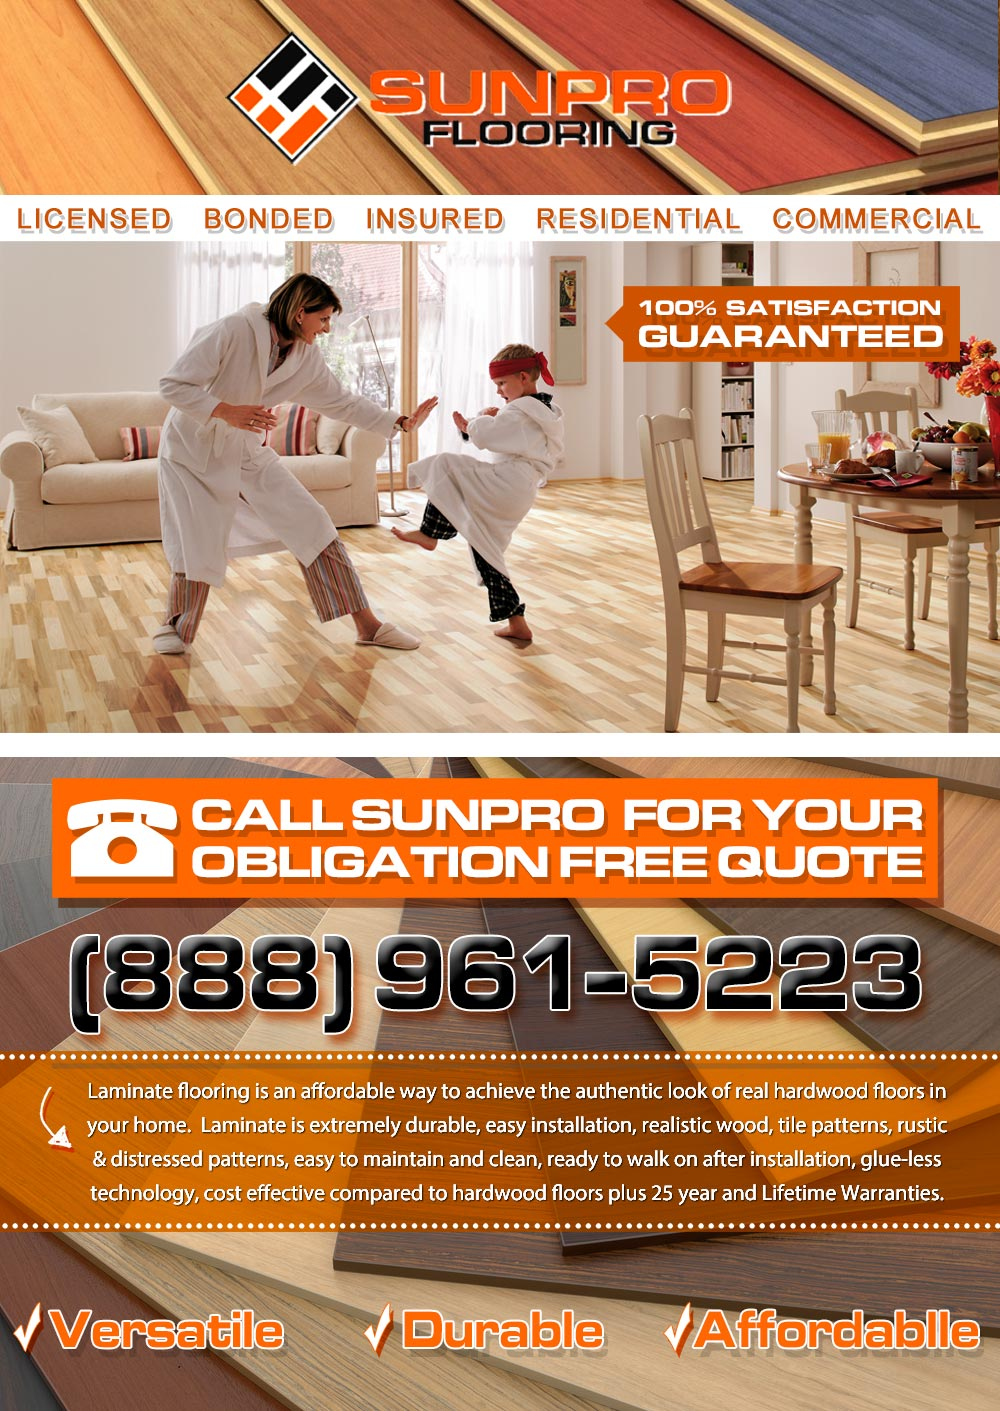 Laminate Floor Installations And Cleaning Services In Los Angeles